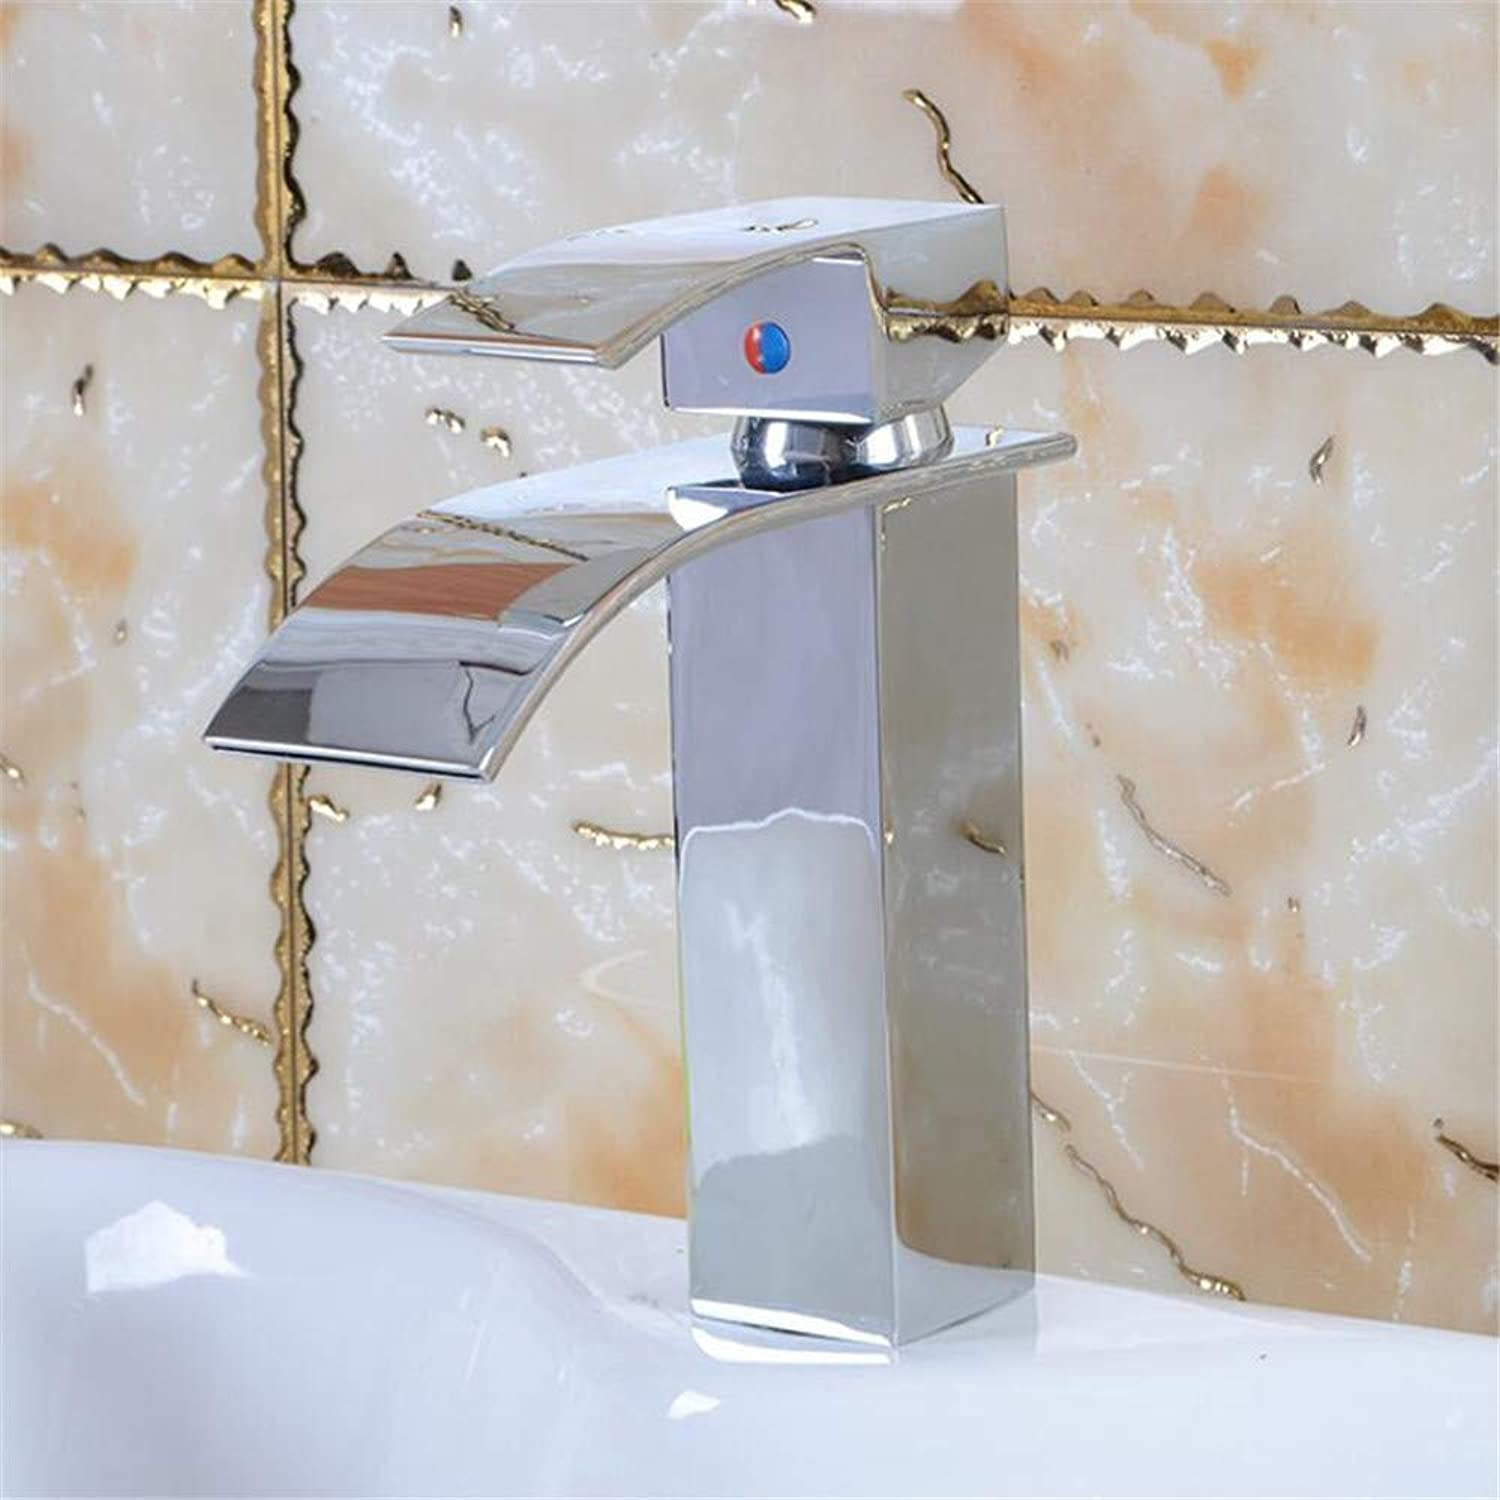 Basin Mixer Tap All Copper Super Thin Waterfall Basin Faucet Hot and Cold Bathroom golden Faucet.